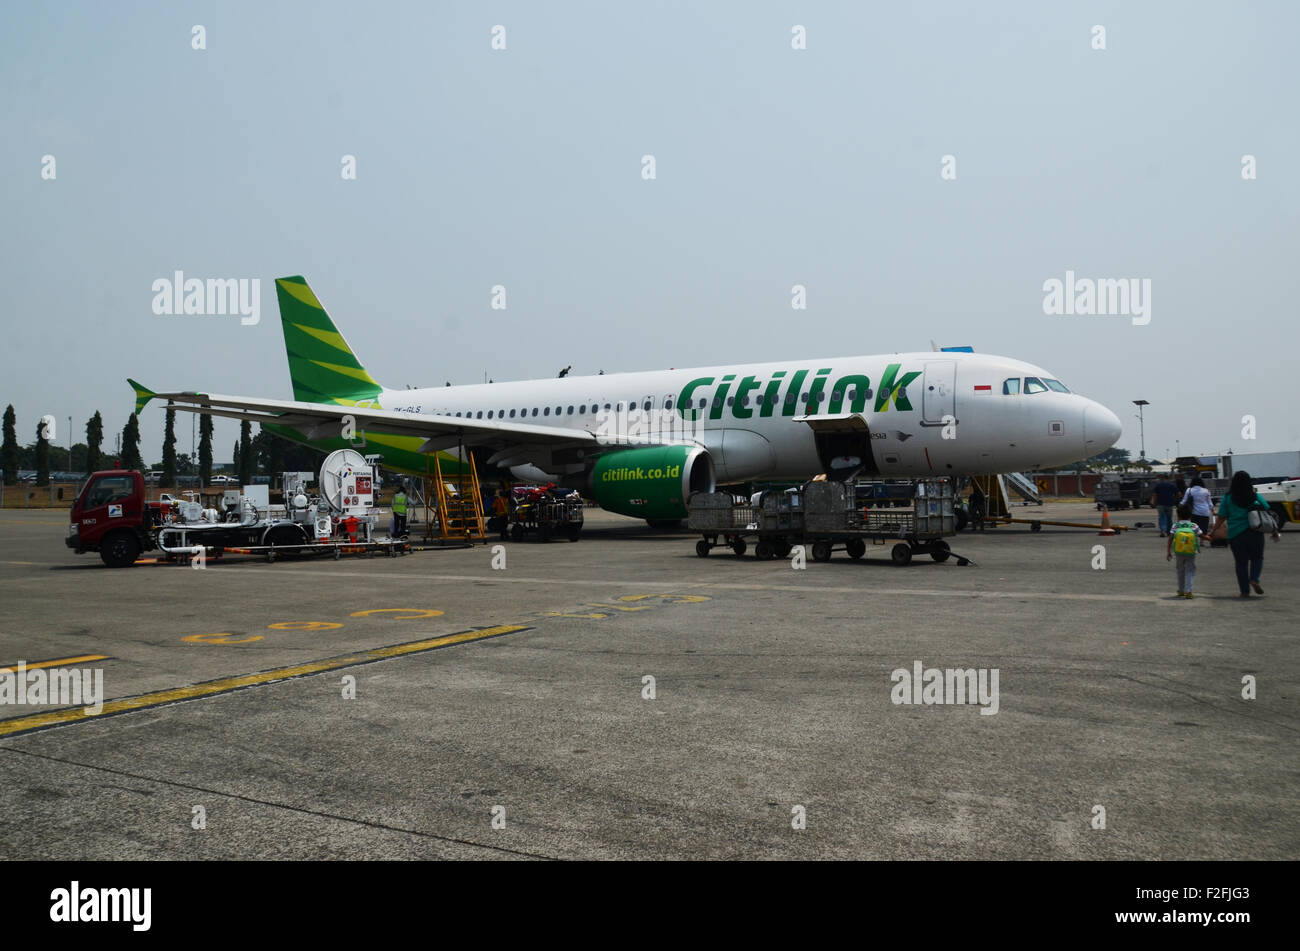 Citilink twin jet Airbus 320 - Stock Image